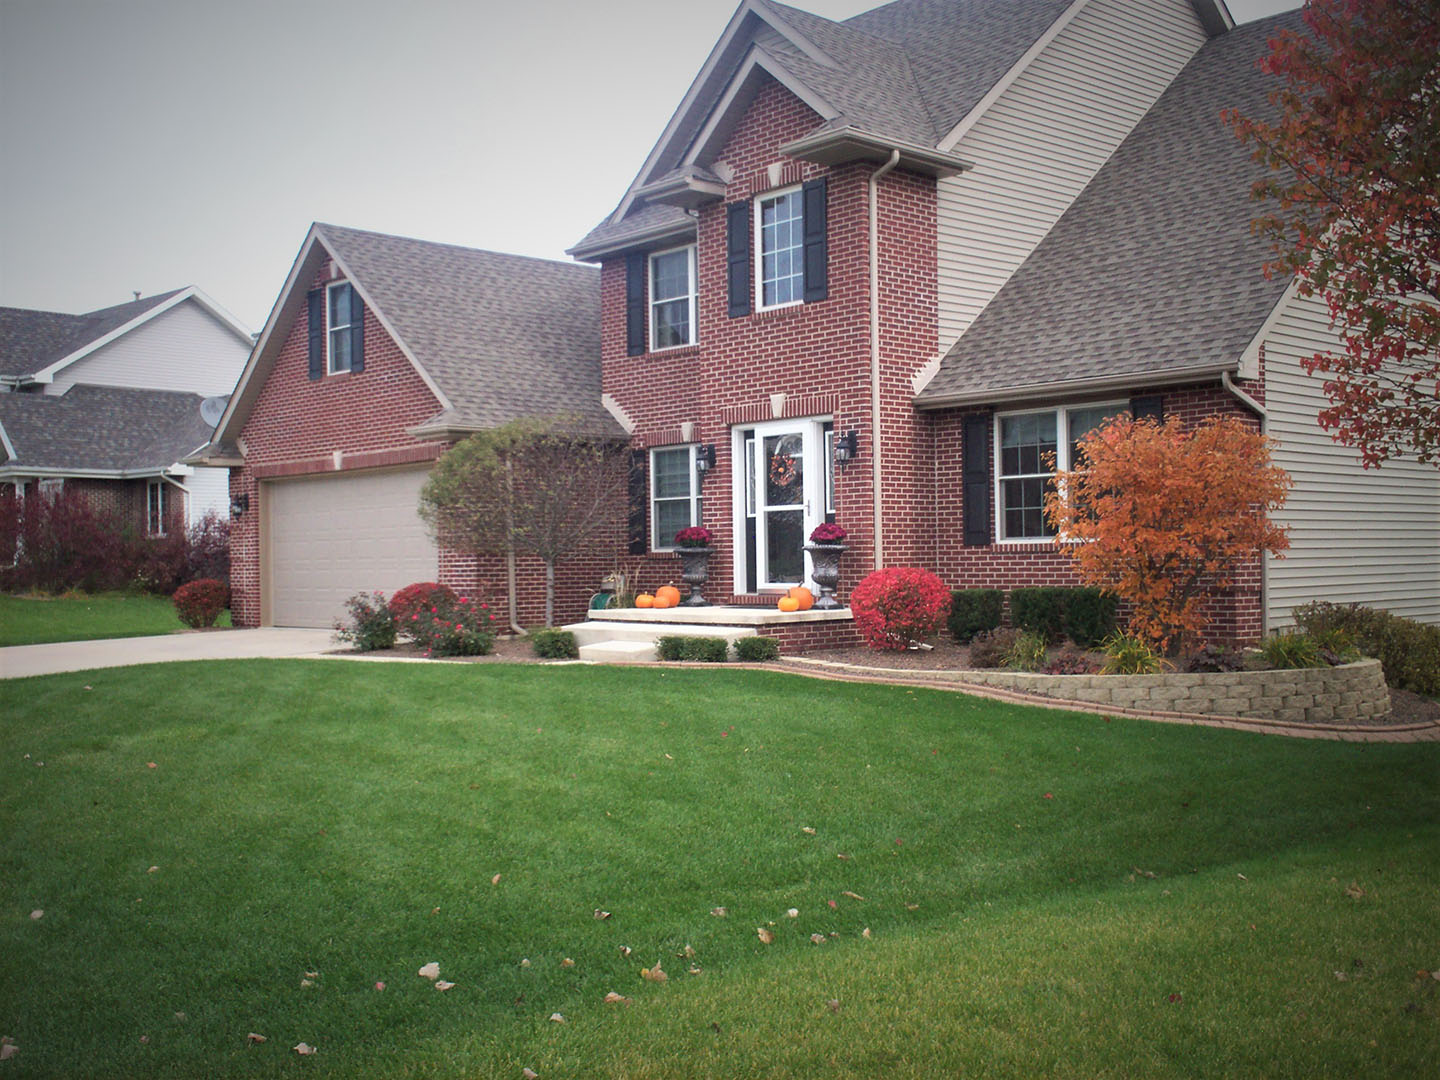 We are a complete, full service landscape company